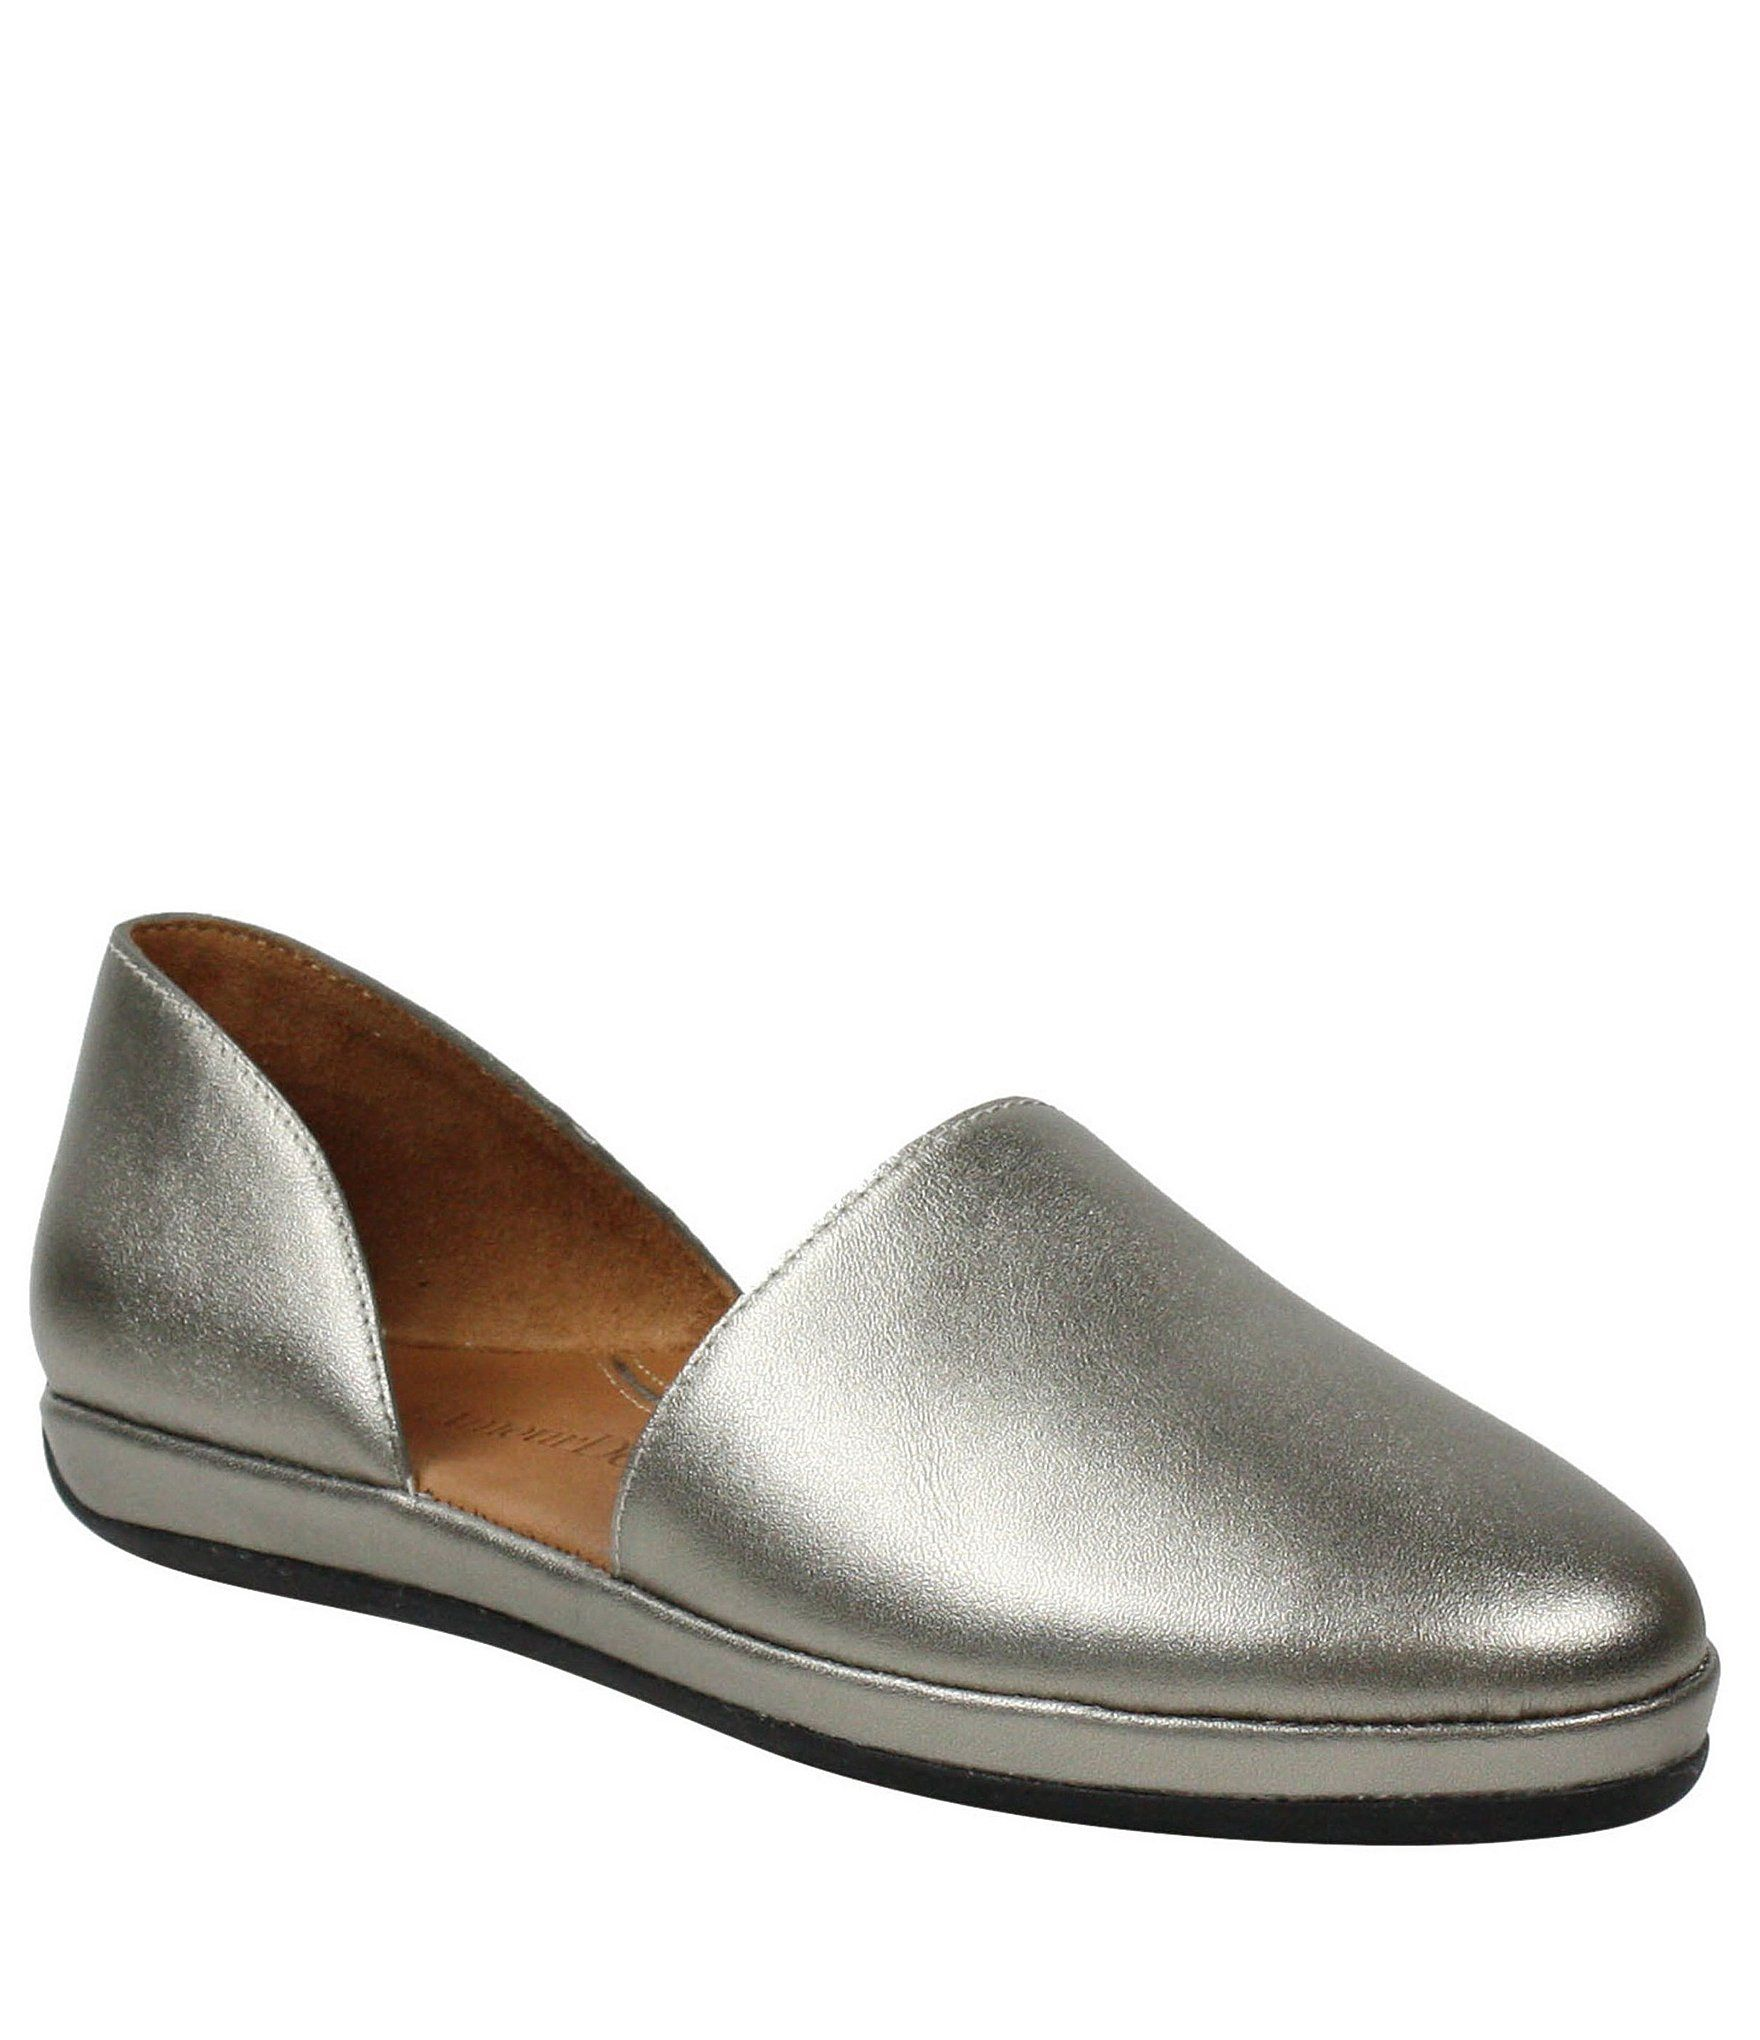 L'Amour Des Pieds Yemina Metallic Leather Two Piece Slip Ons - 9M